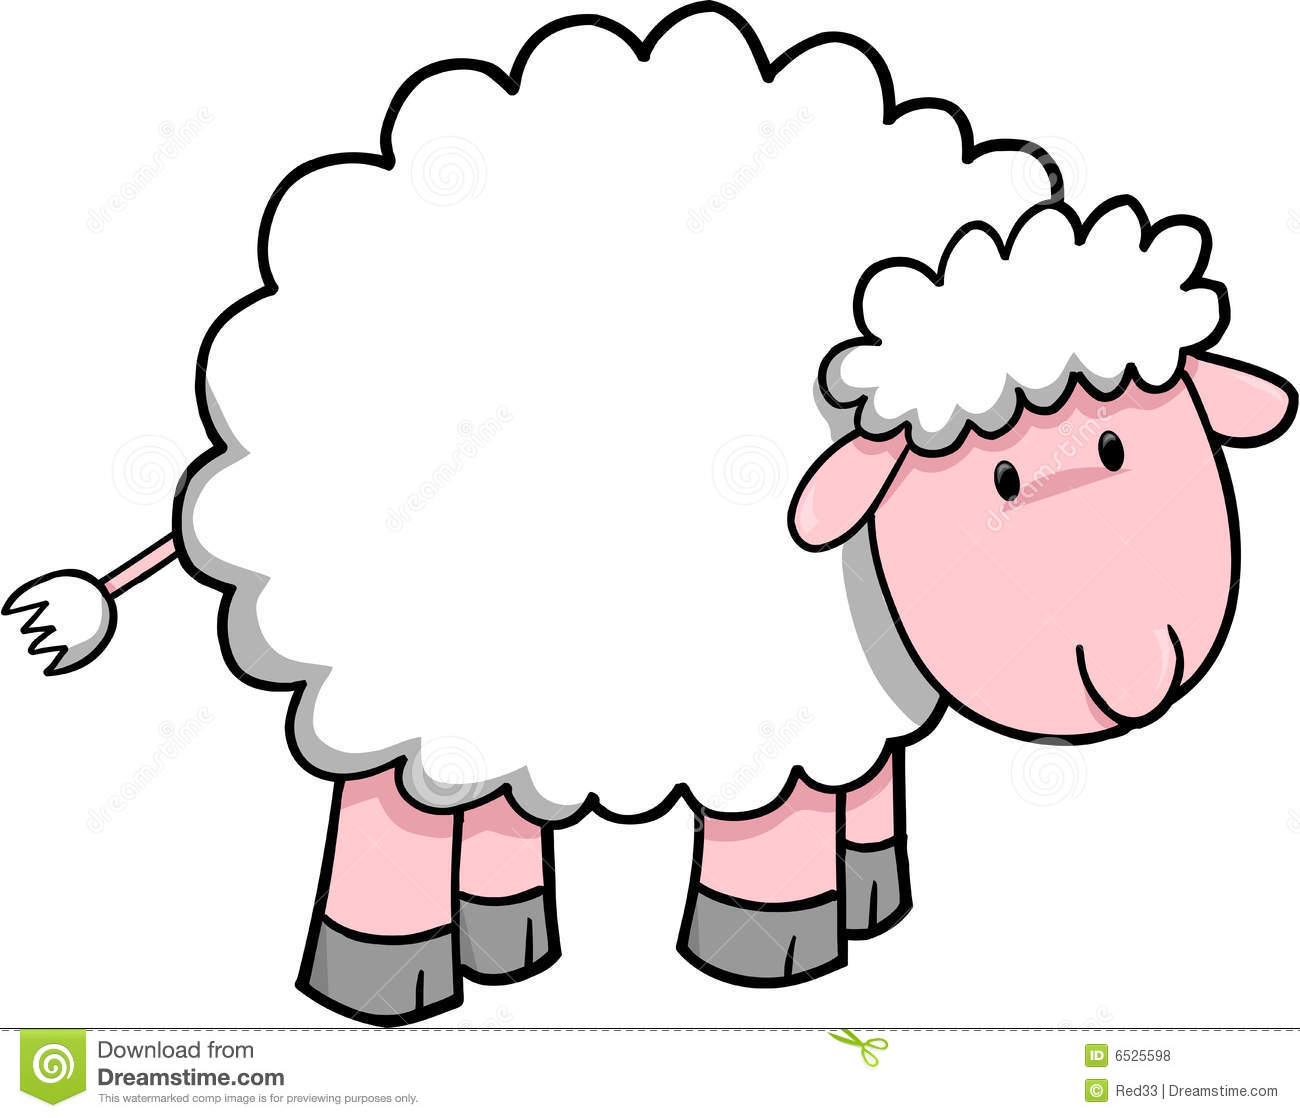 Sheep clipart fluffy sheep. Free download best